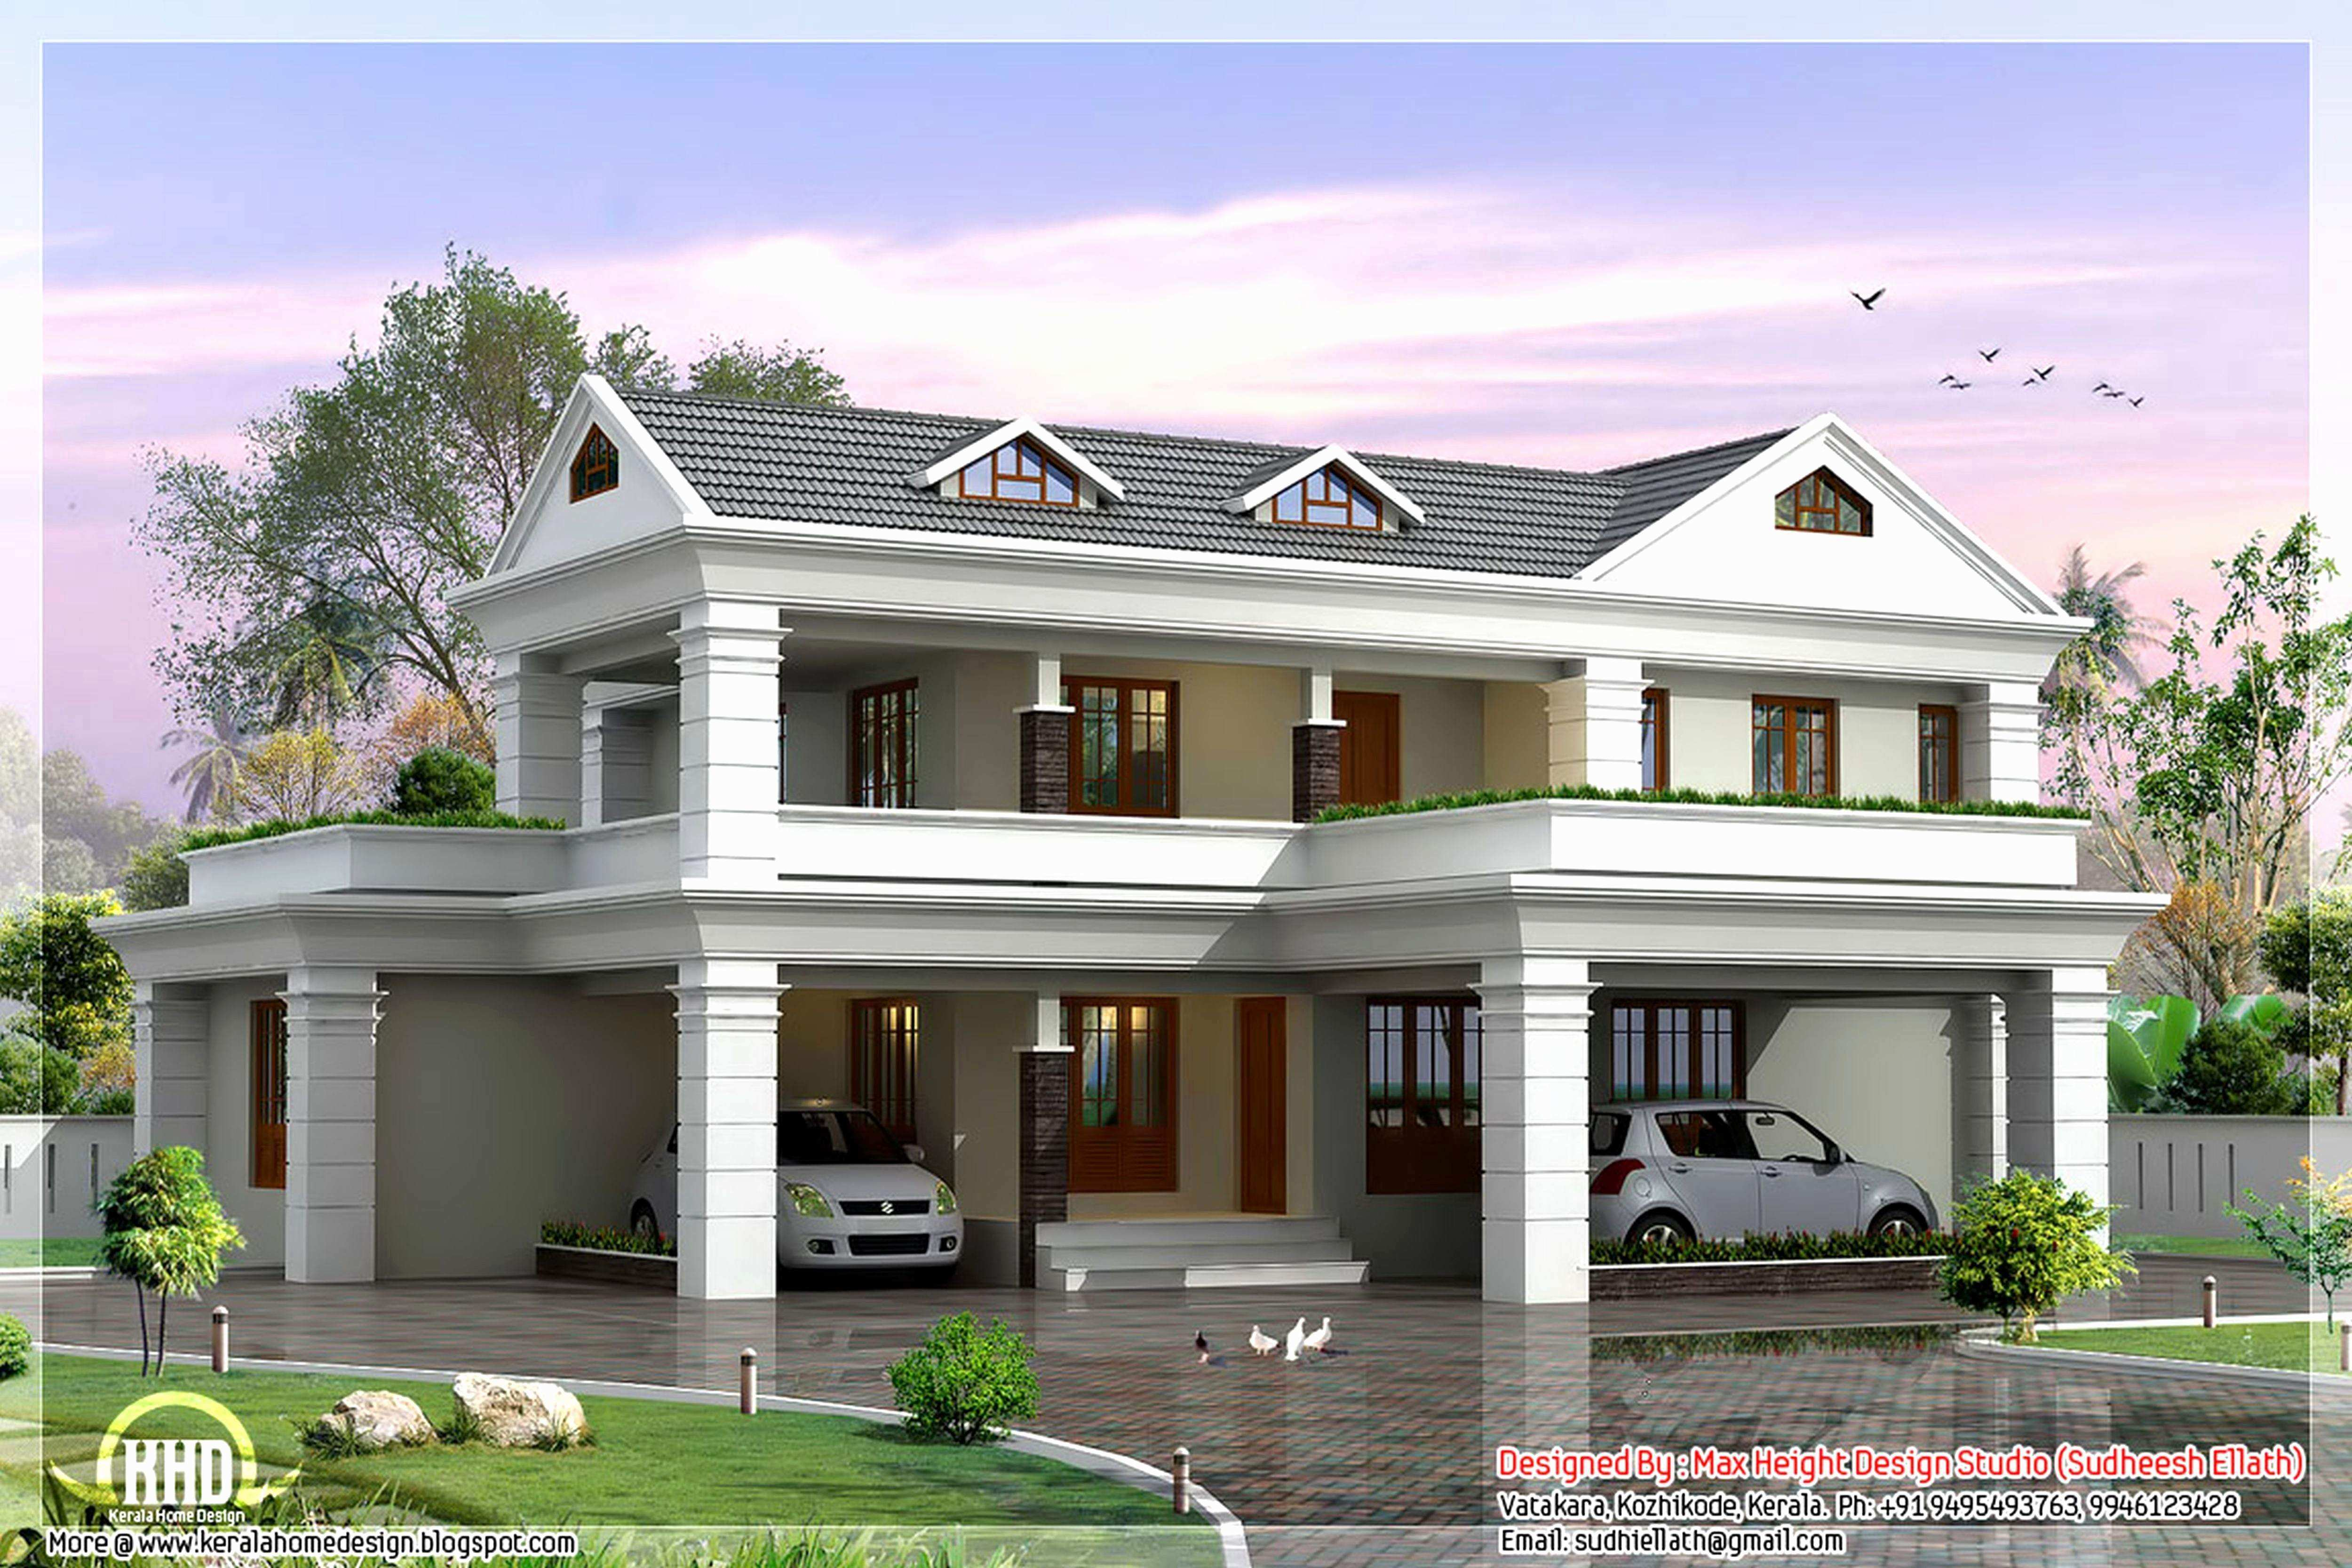 3d House Plans Maker Inspirational Wall Decals for Bedroom Unique 1